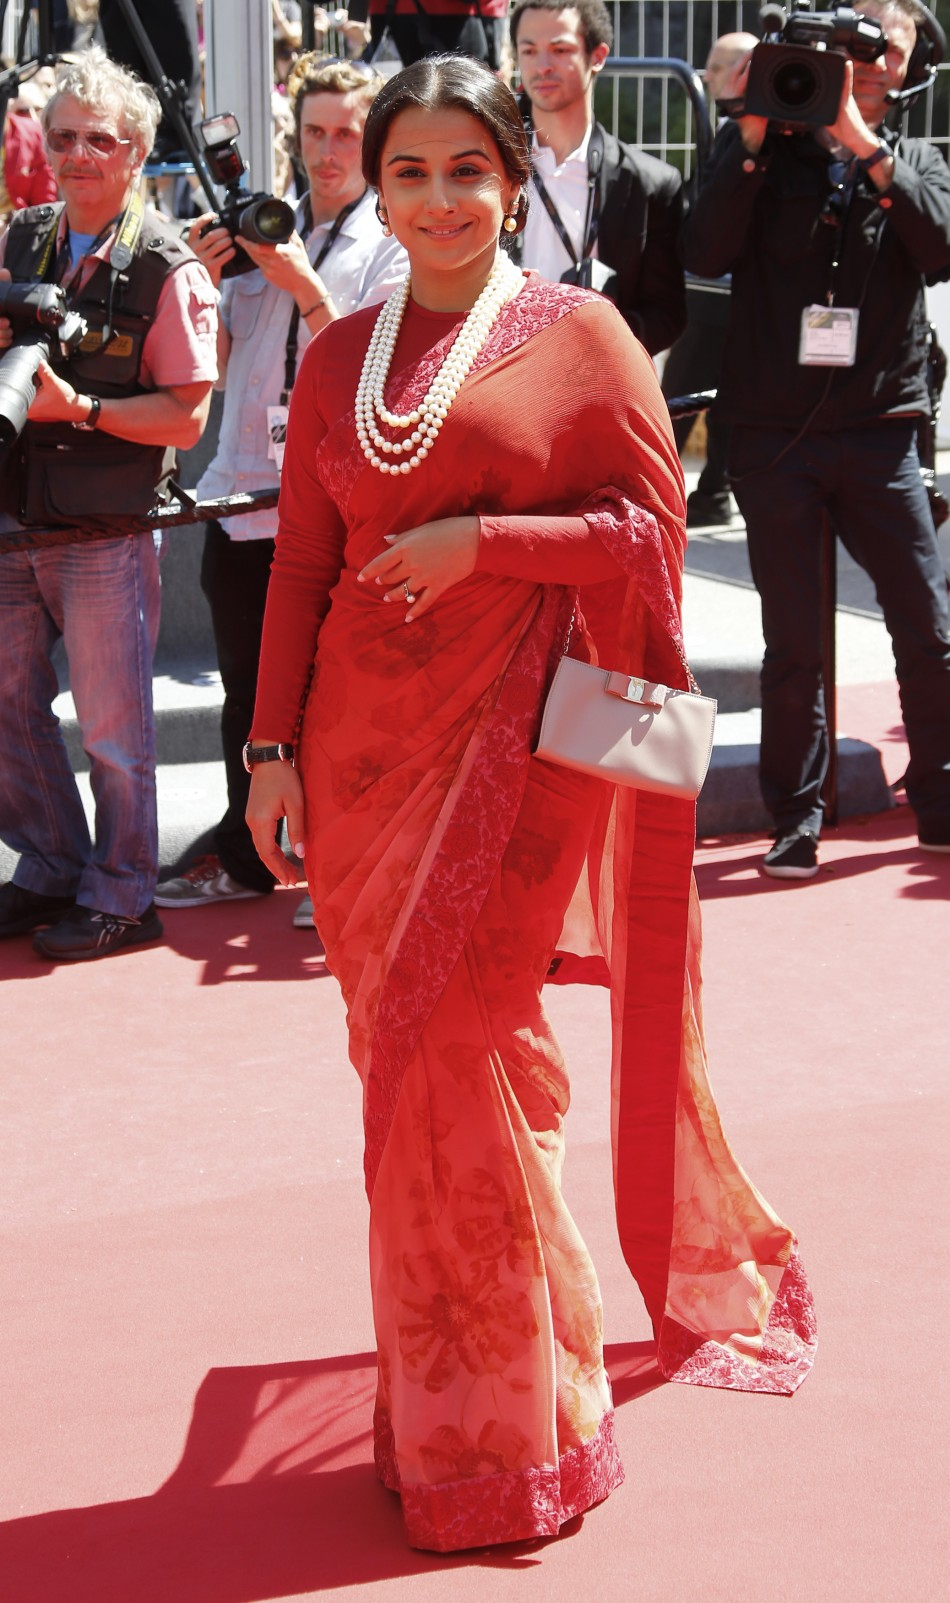 Jury Member actress Vidya Balan poses on the red carpet as she arrives for the screening of the film Un Chateau en Italie in competition during the 66th Cannes Film Festival in Cannes May 20, 2013.